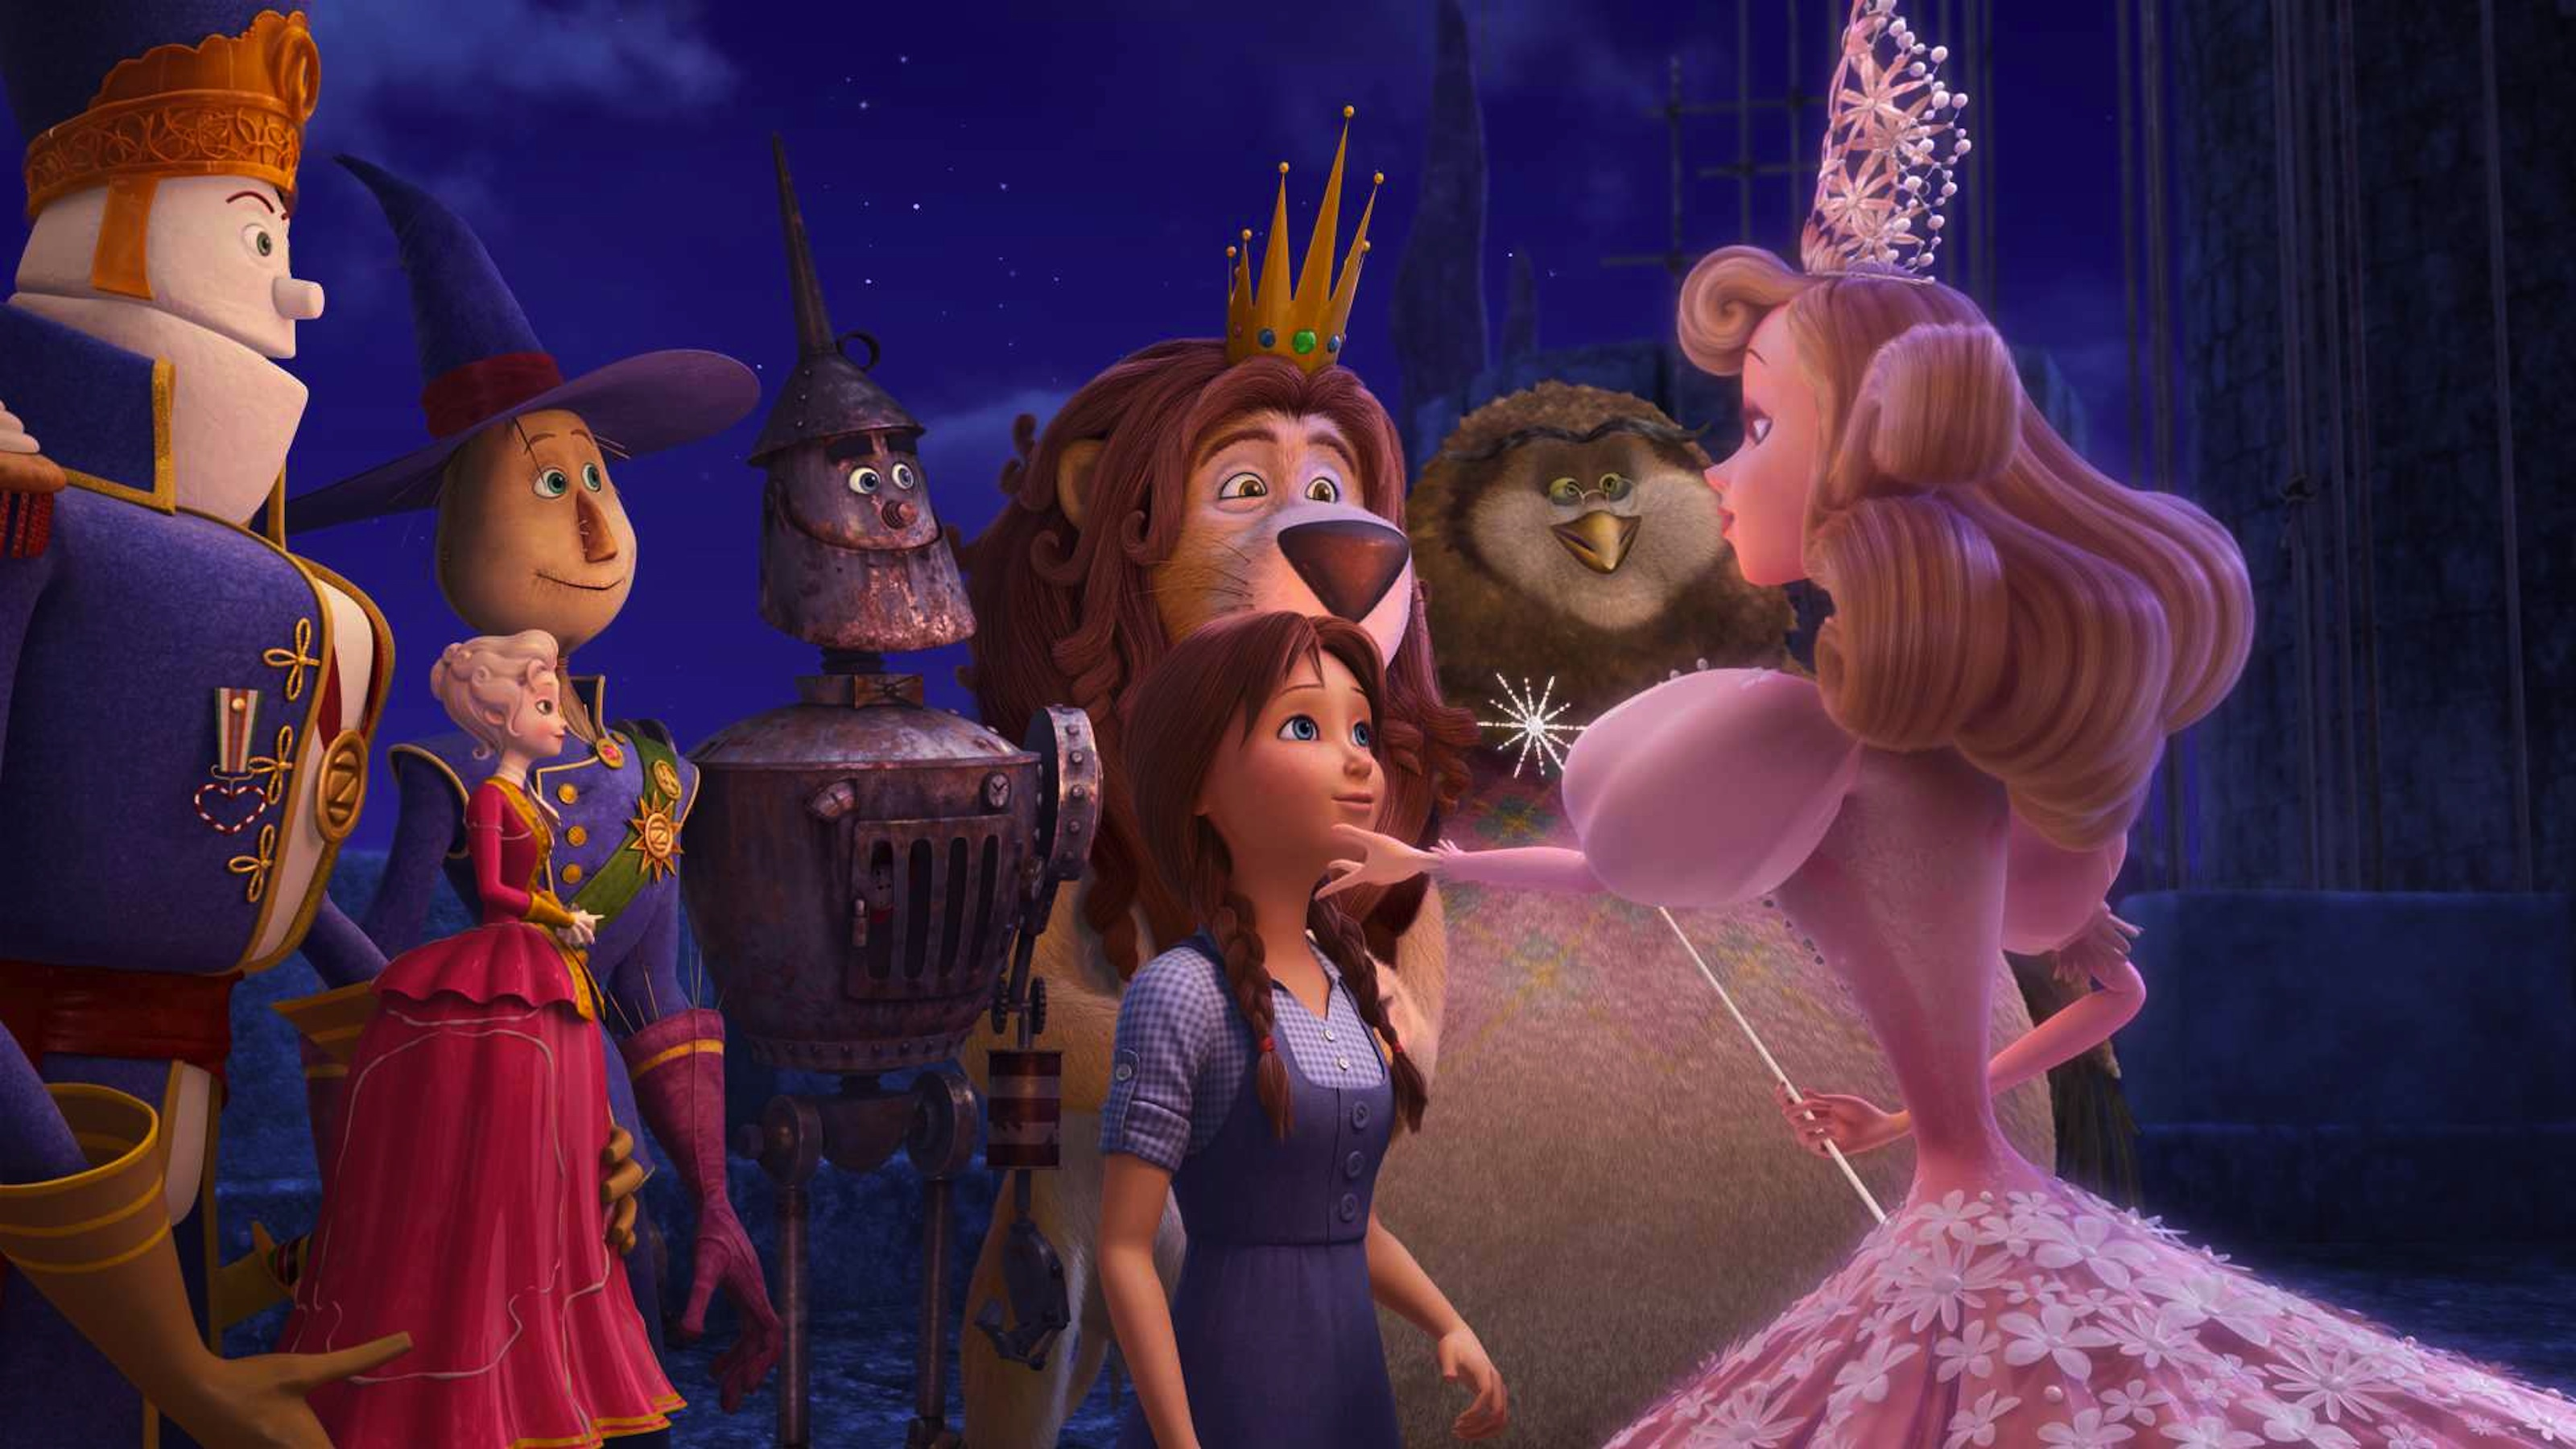 Legends of Oz group picture (3)